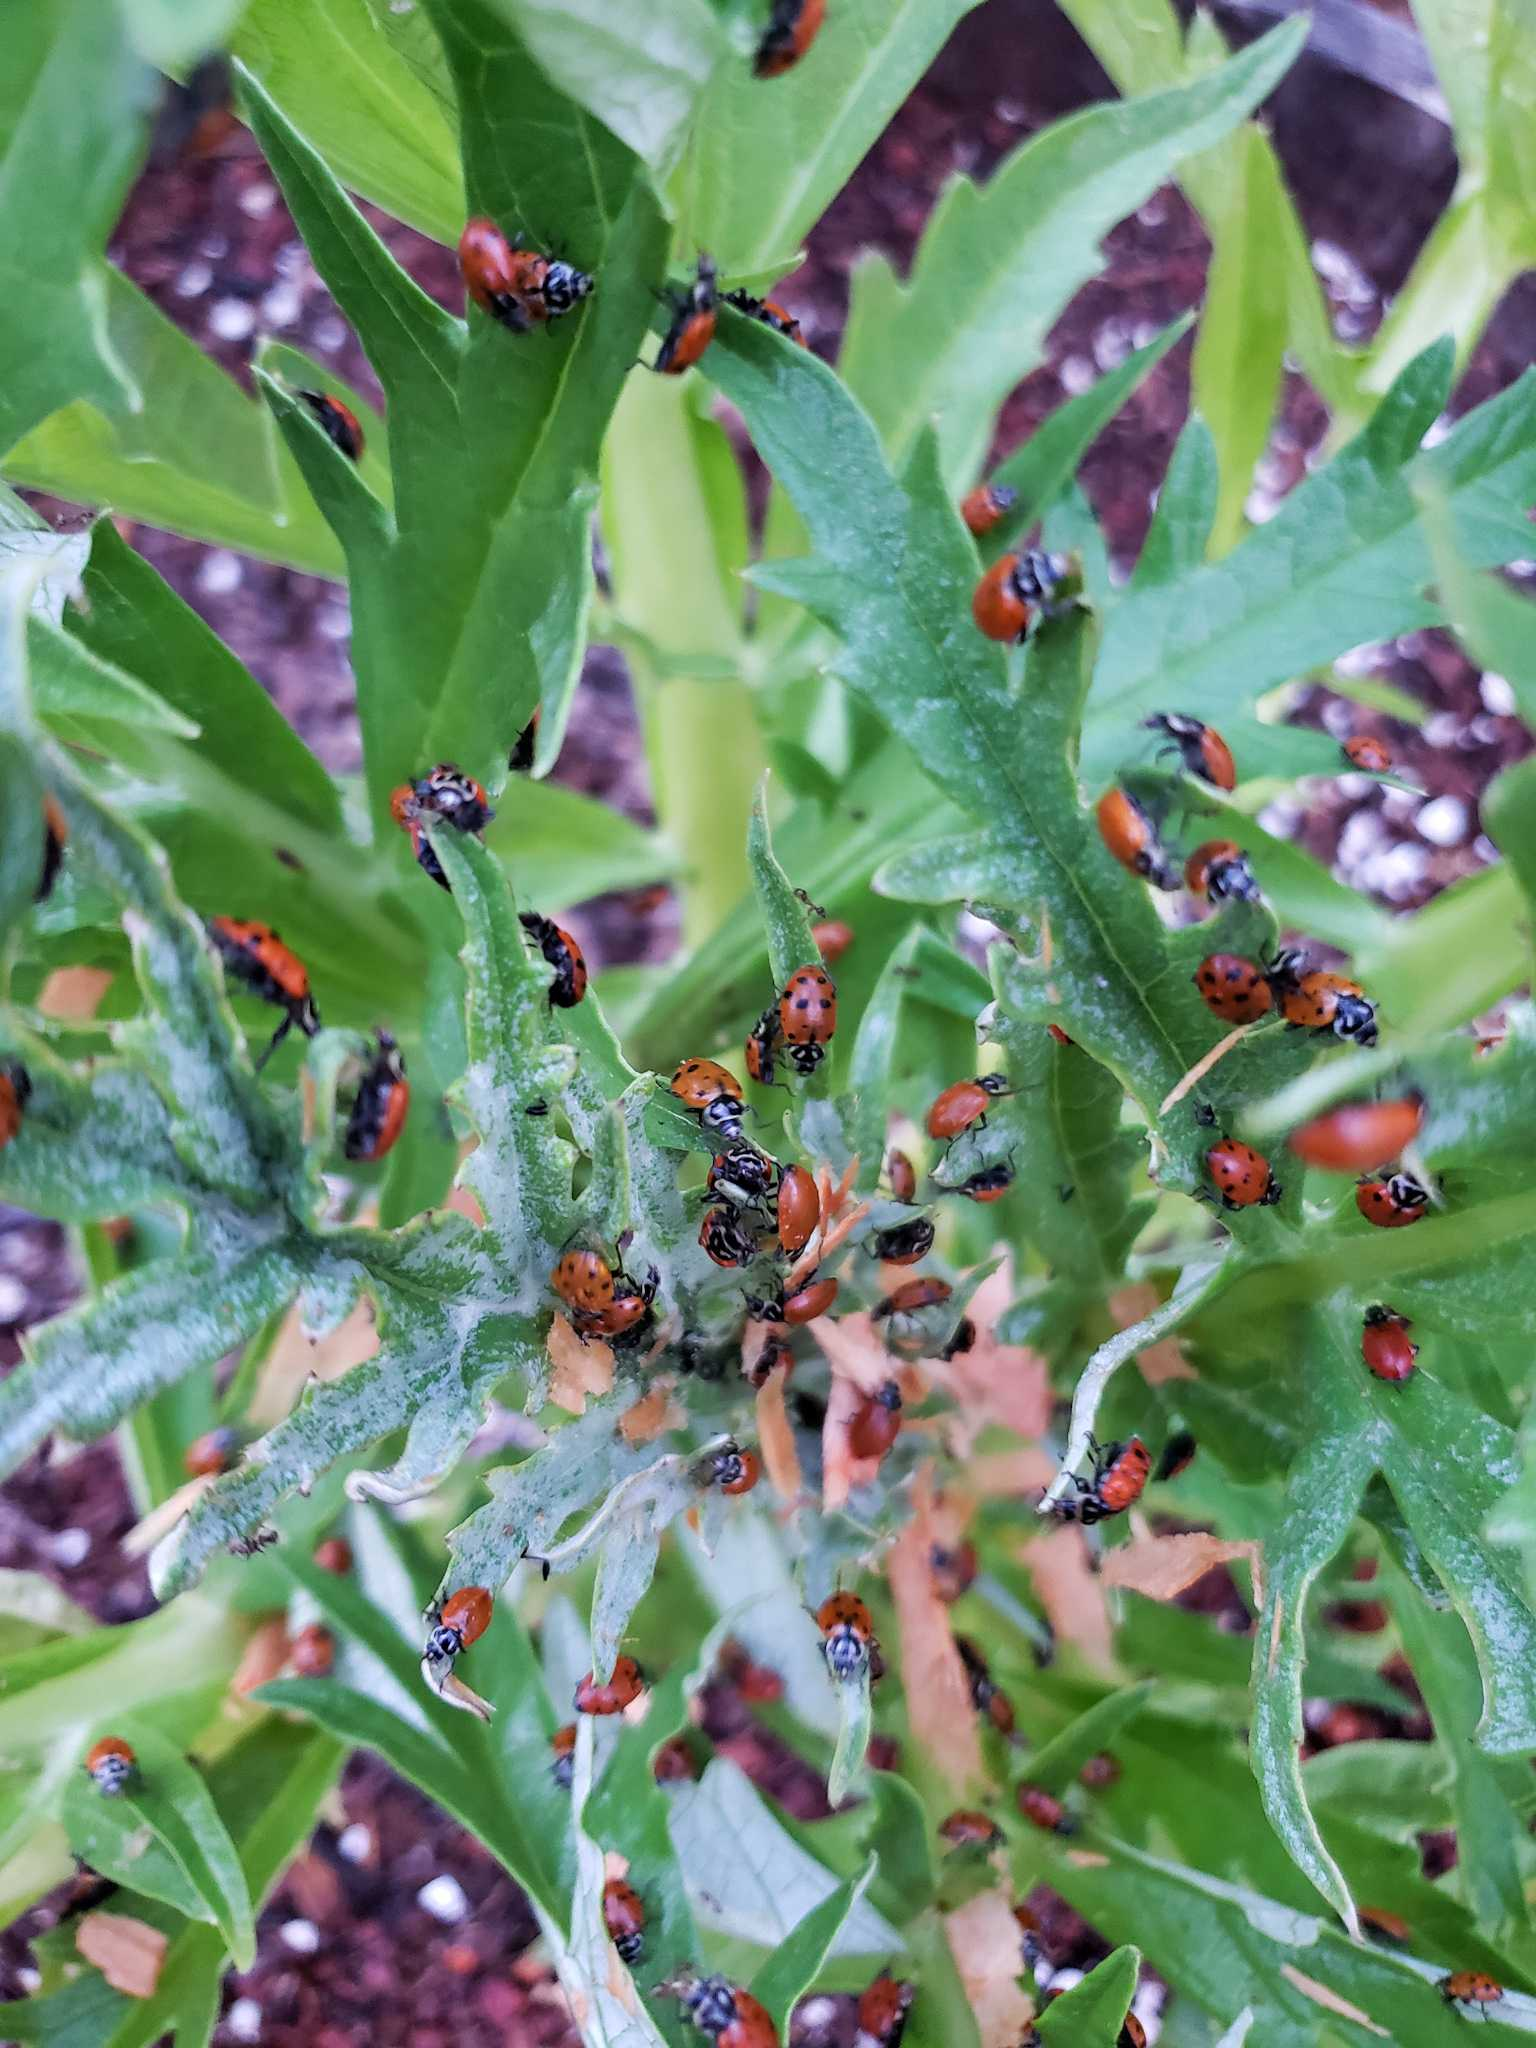 A close up image of the middle of an artichoke plant that is covered in hundreds of spotted lady bugs.